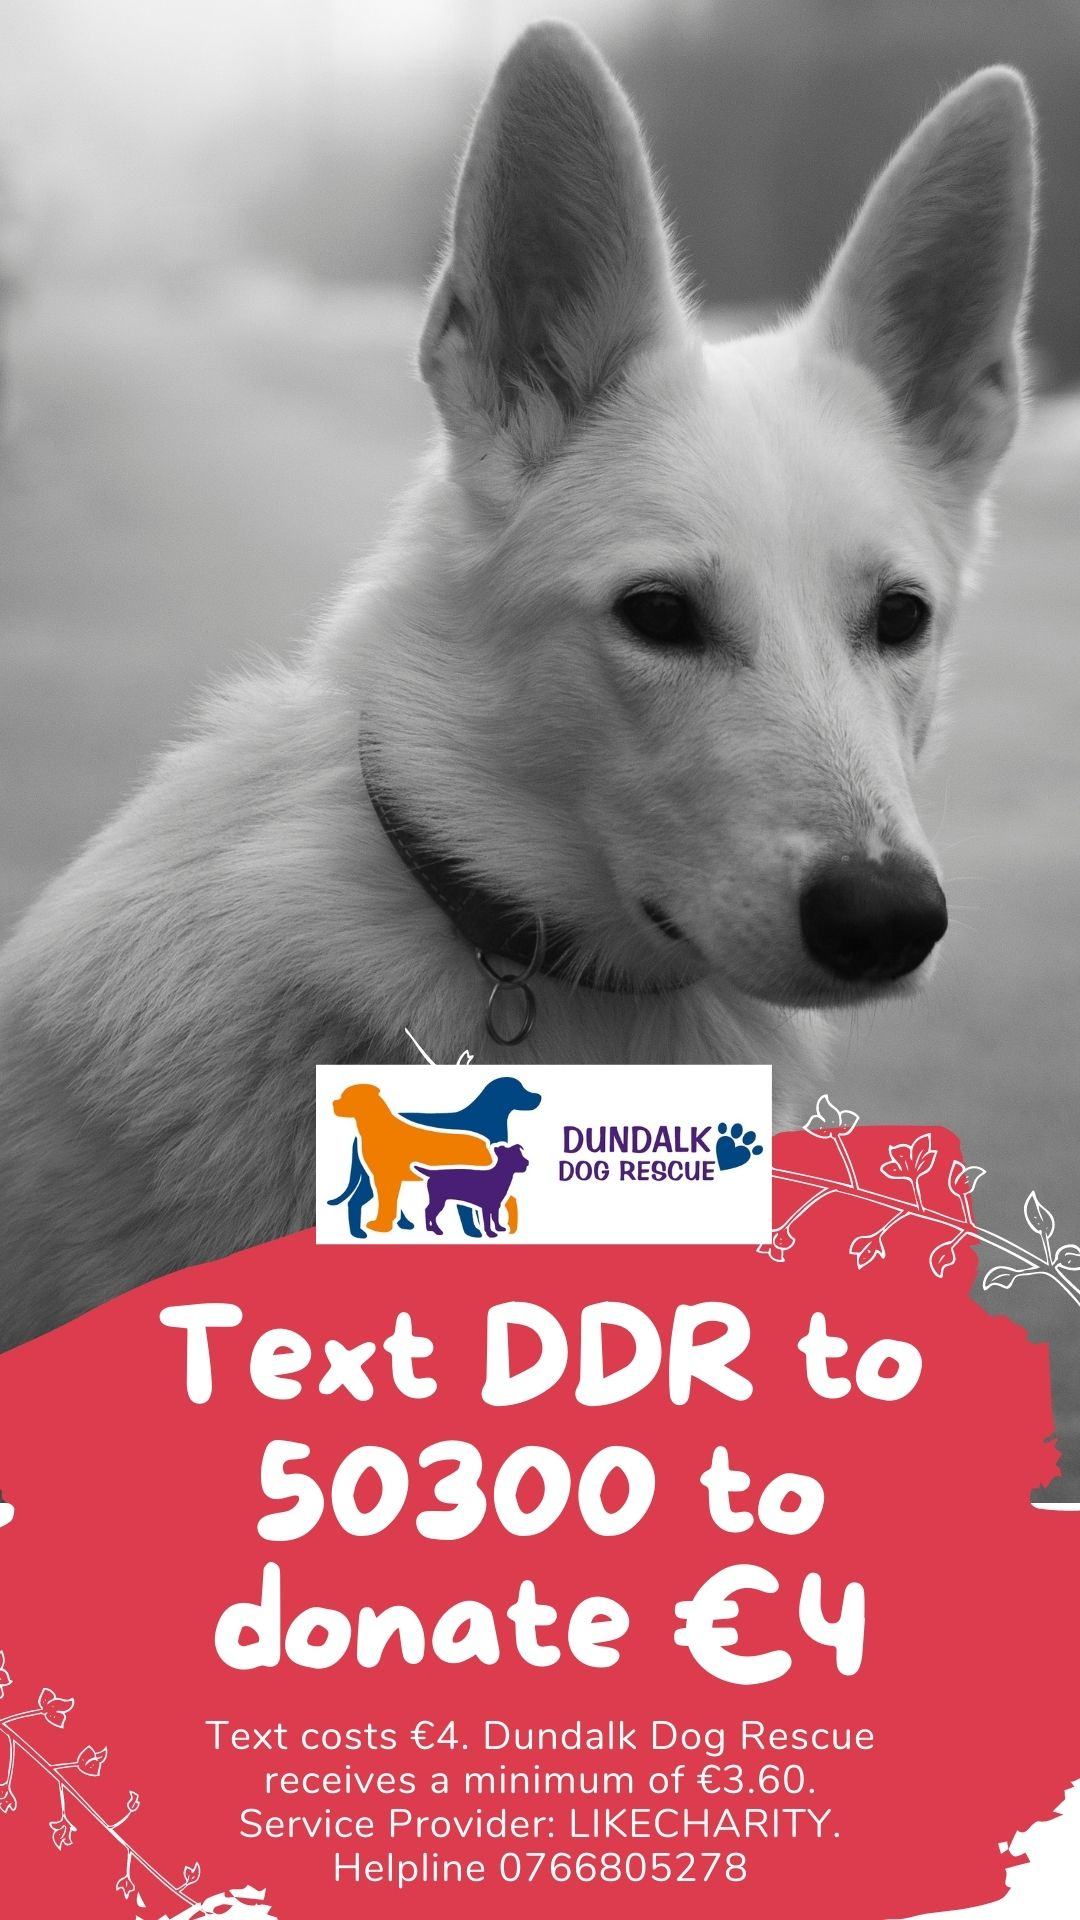 Text DDR to 50300 to Donate €4